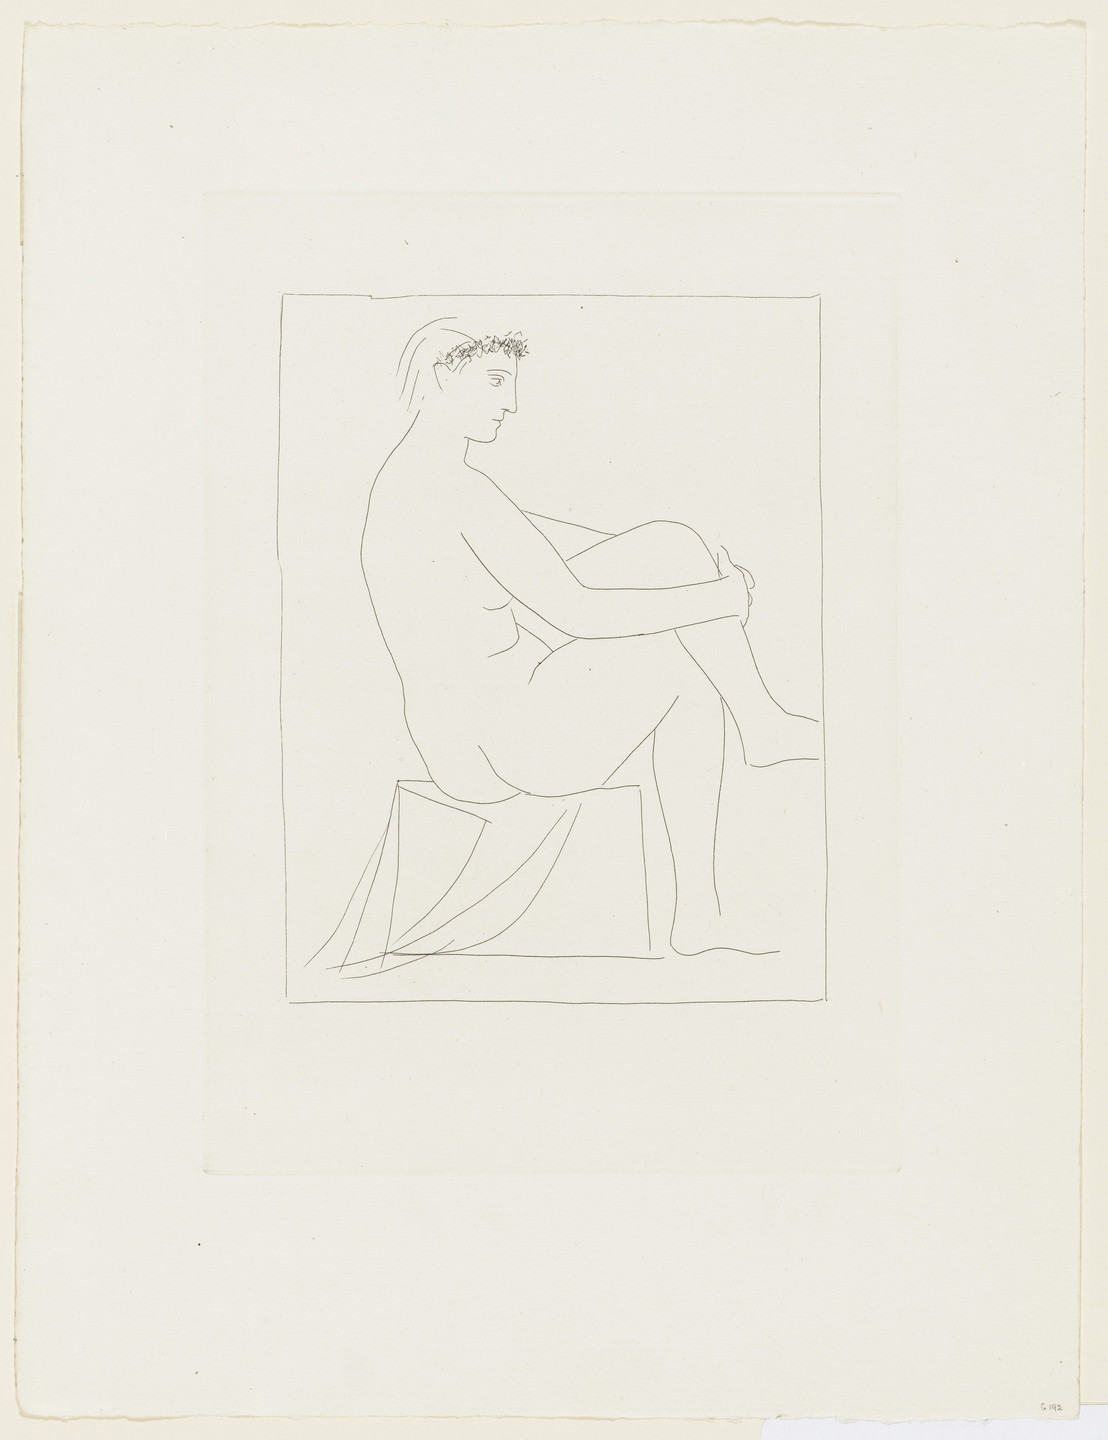 Pablo Picasso. Nude Woman with Crossed Legs Crowned, with Flowers (Femme nue couronnée de fleurs, aux jambes croisées) from the Vollard Suite (Suite Vollard). 1930, published 1939